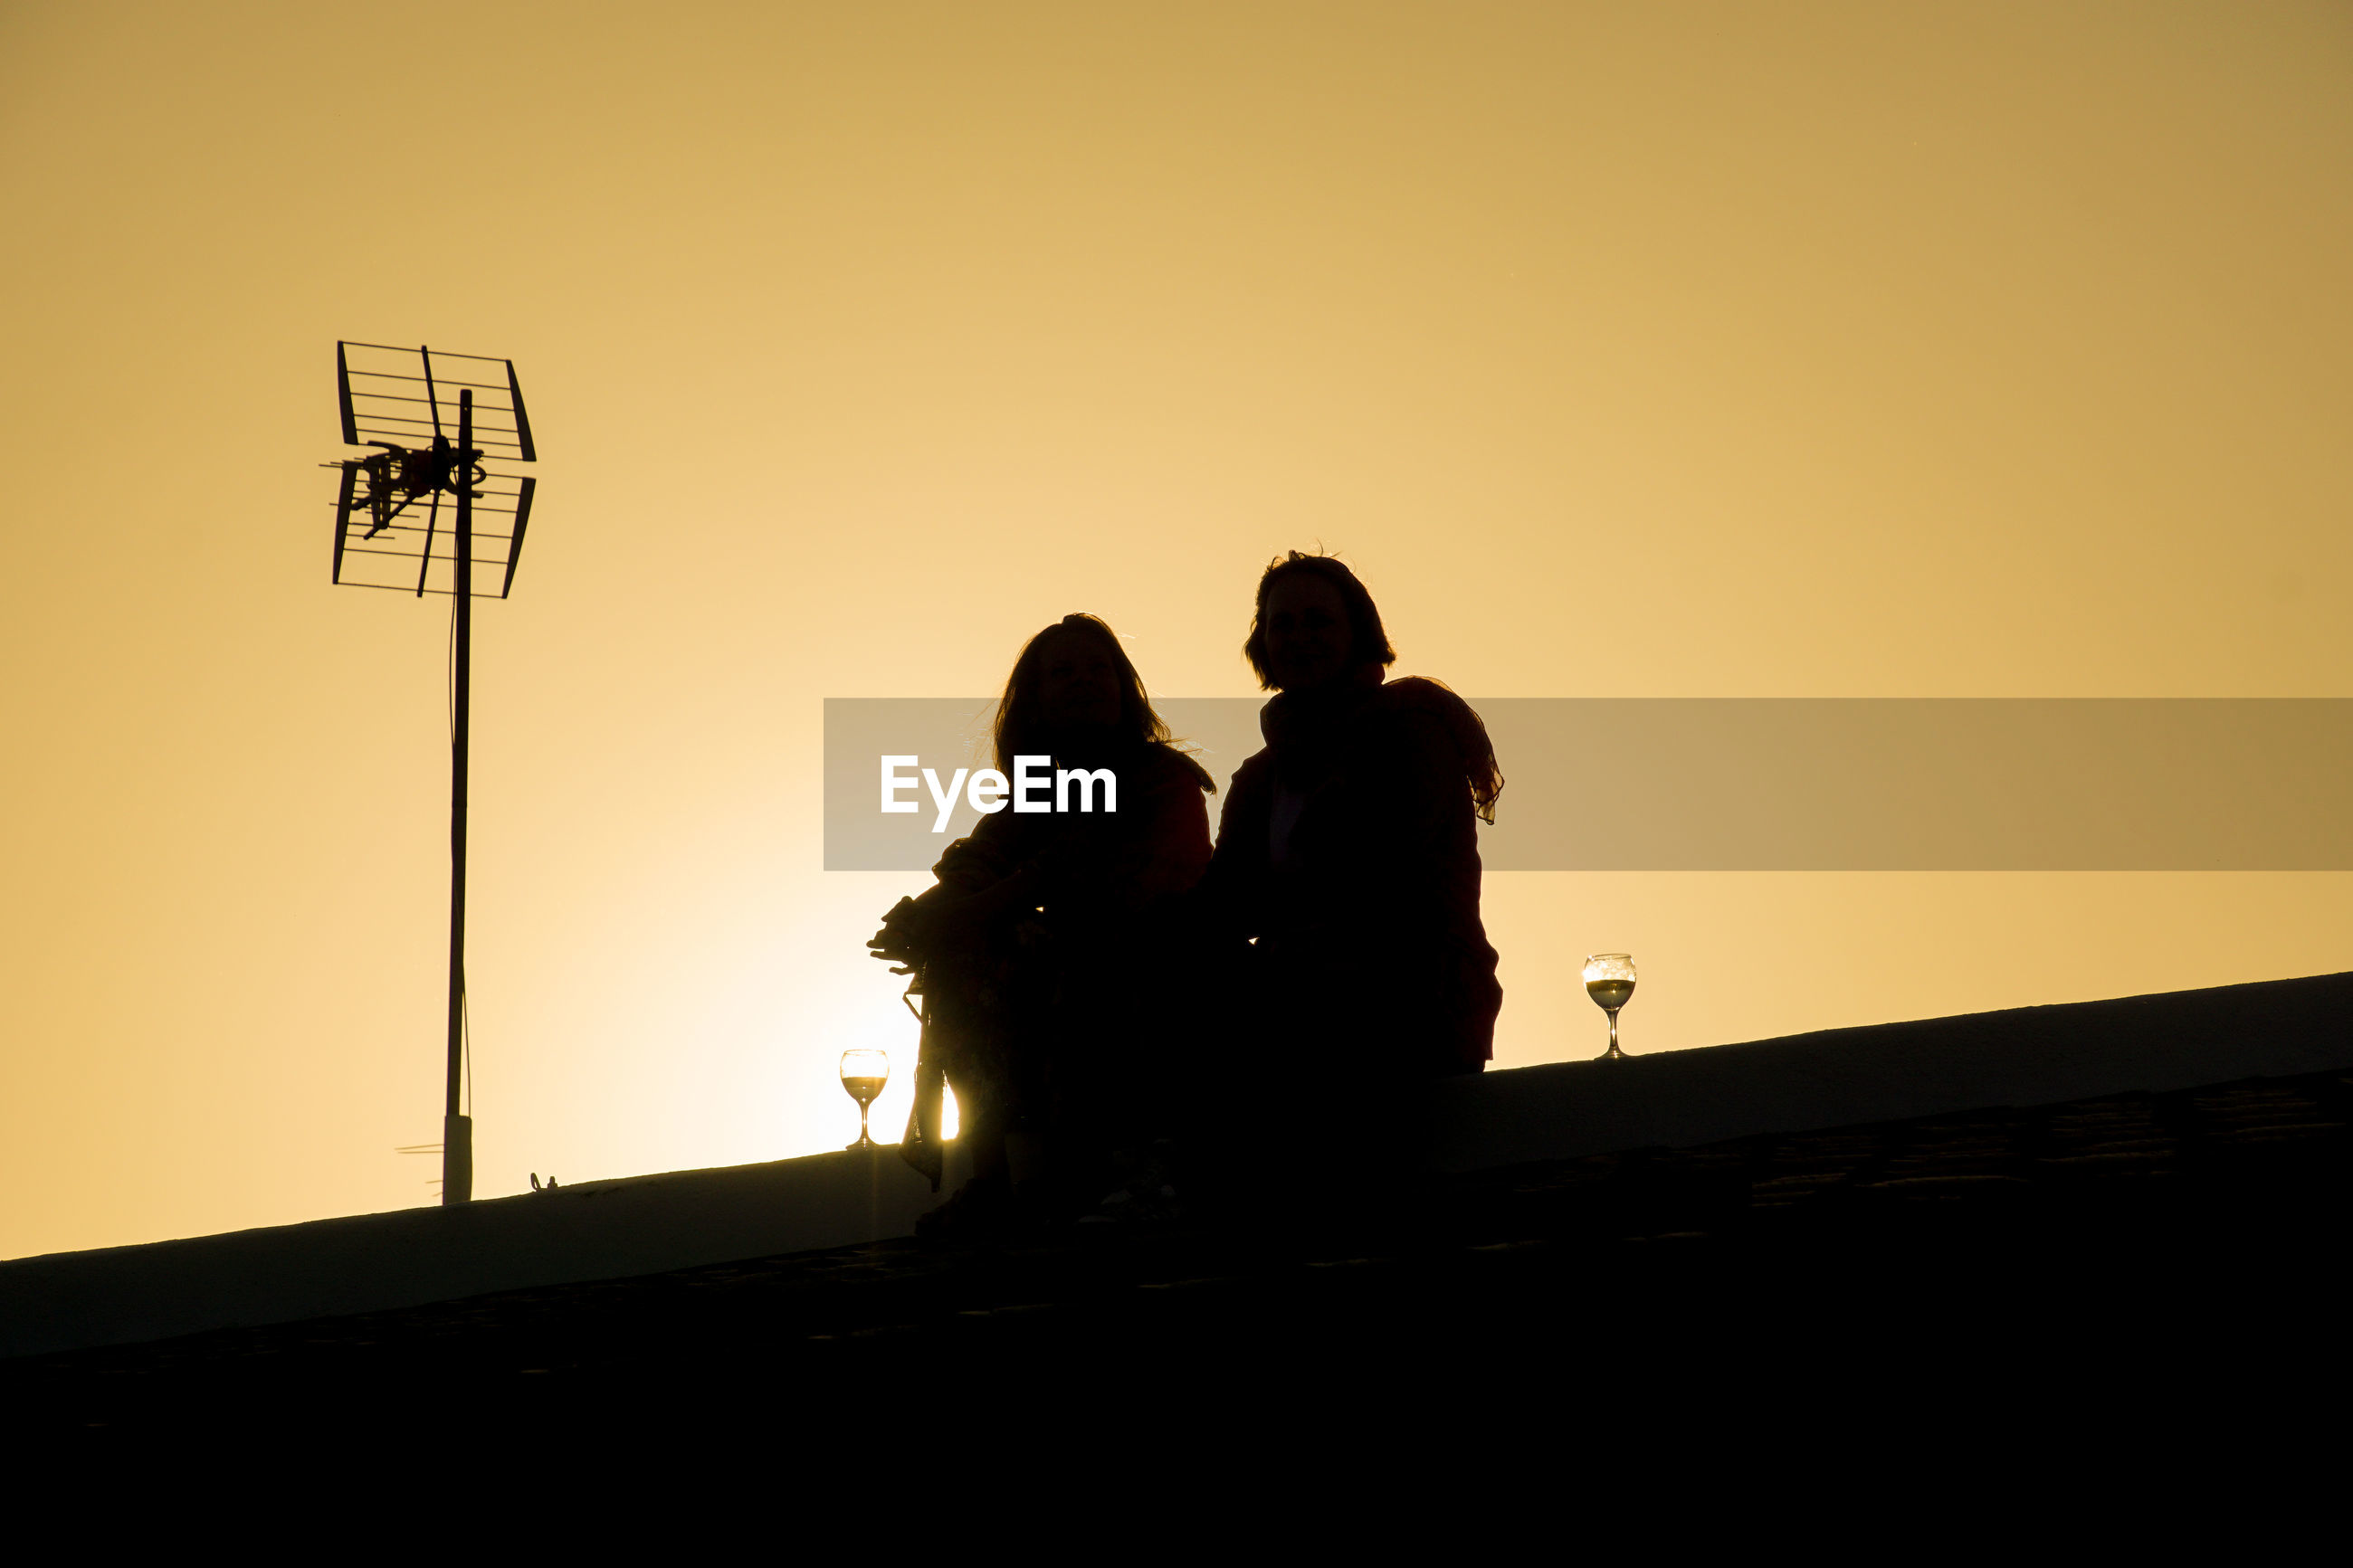 Low angle view of silhouette of people on roof against sky